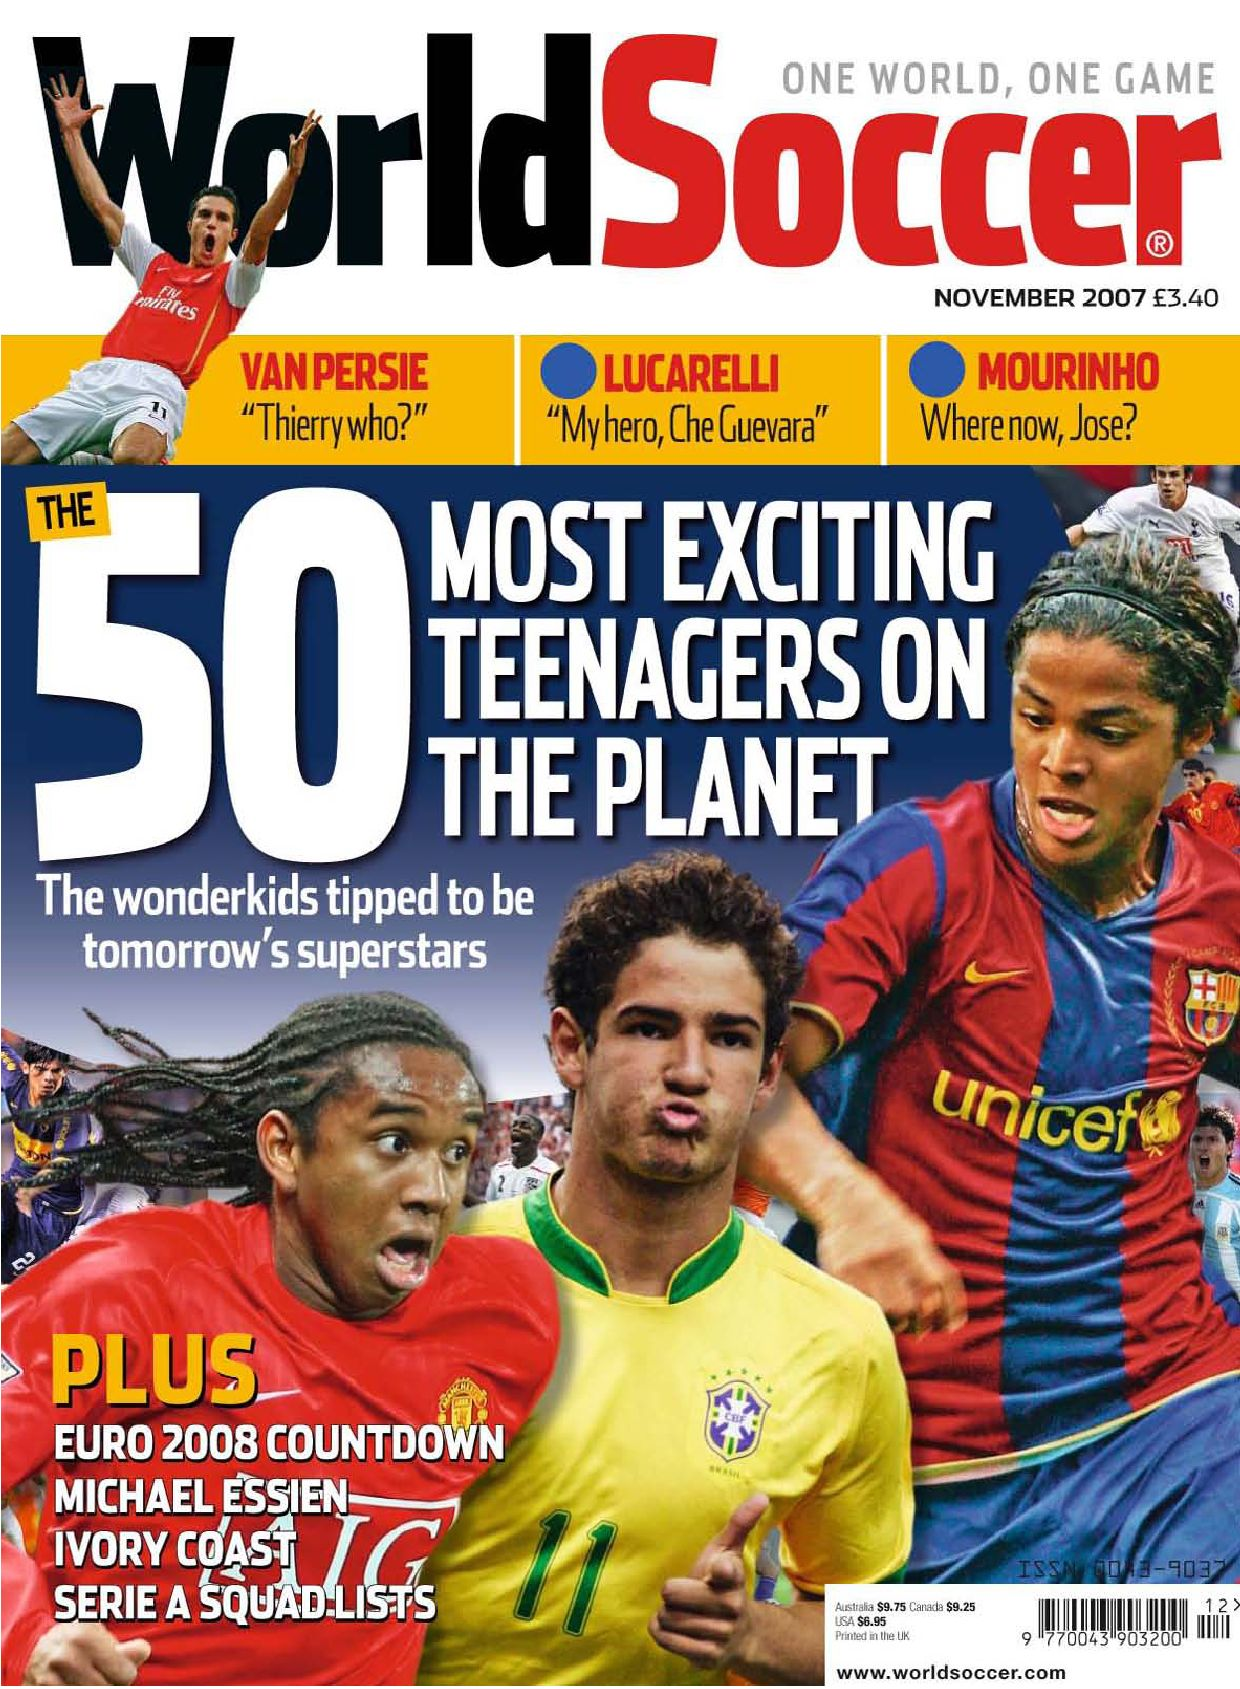 104f8681885 worlsoccer1 by bhanuteja - issuu